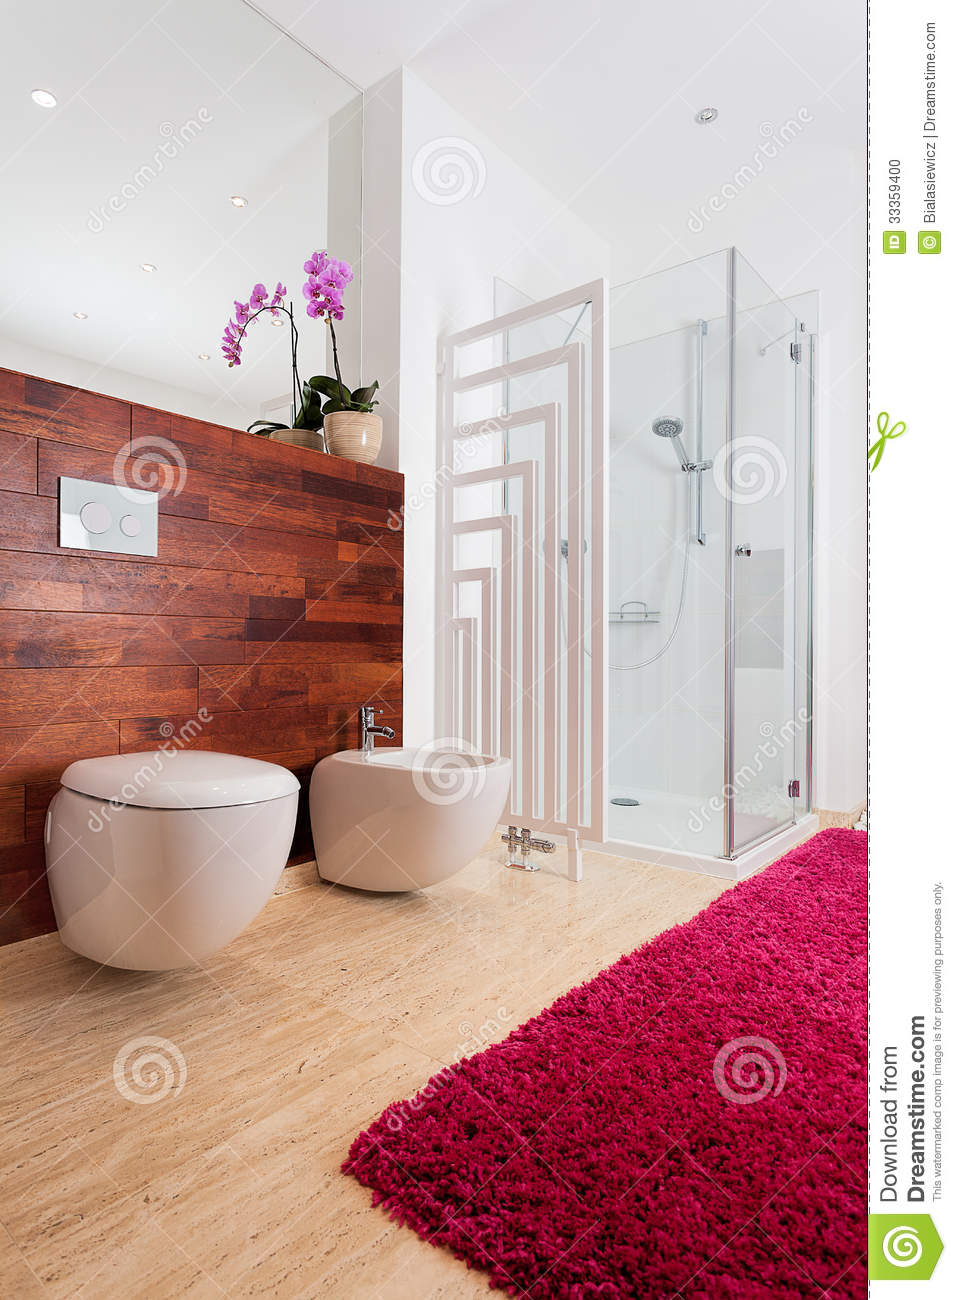 orchid and red carpet in bathroom stock photo image